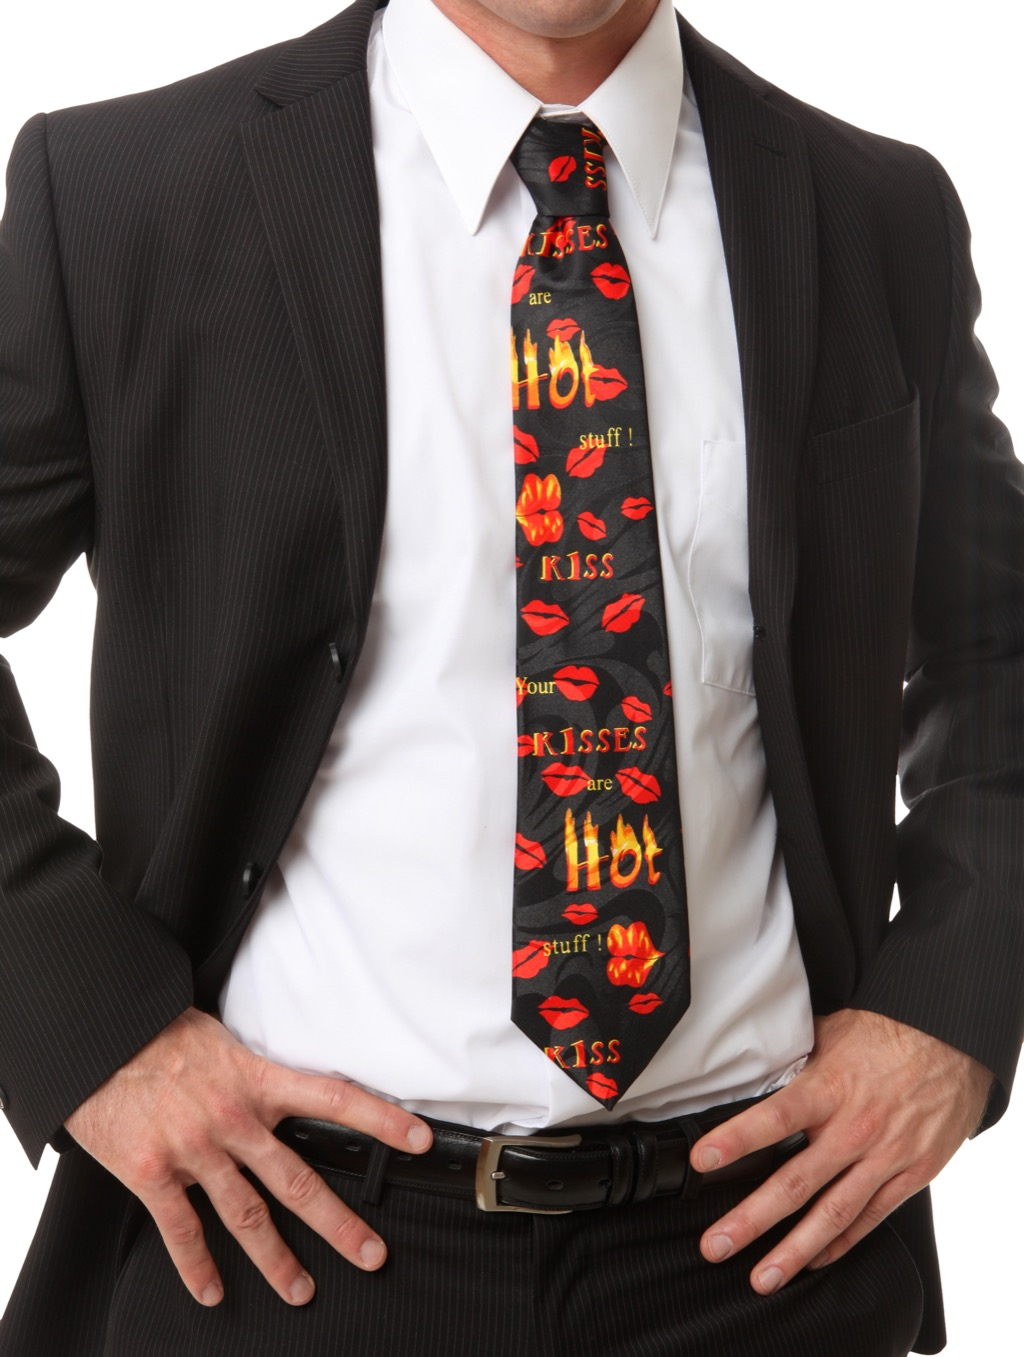 Novelty Ties are something no man should wear to work